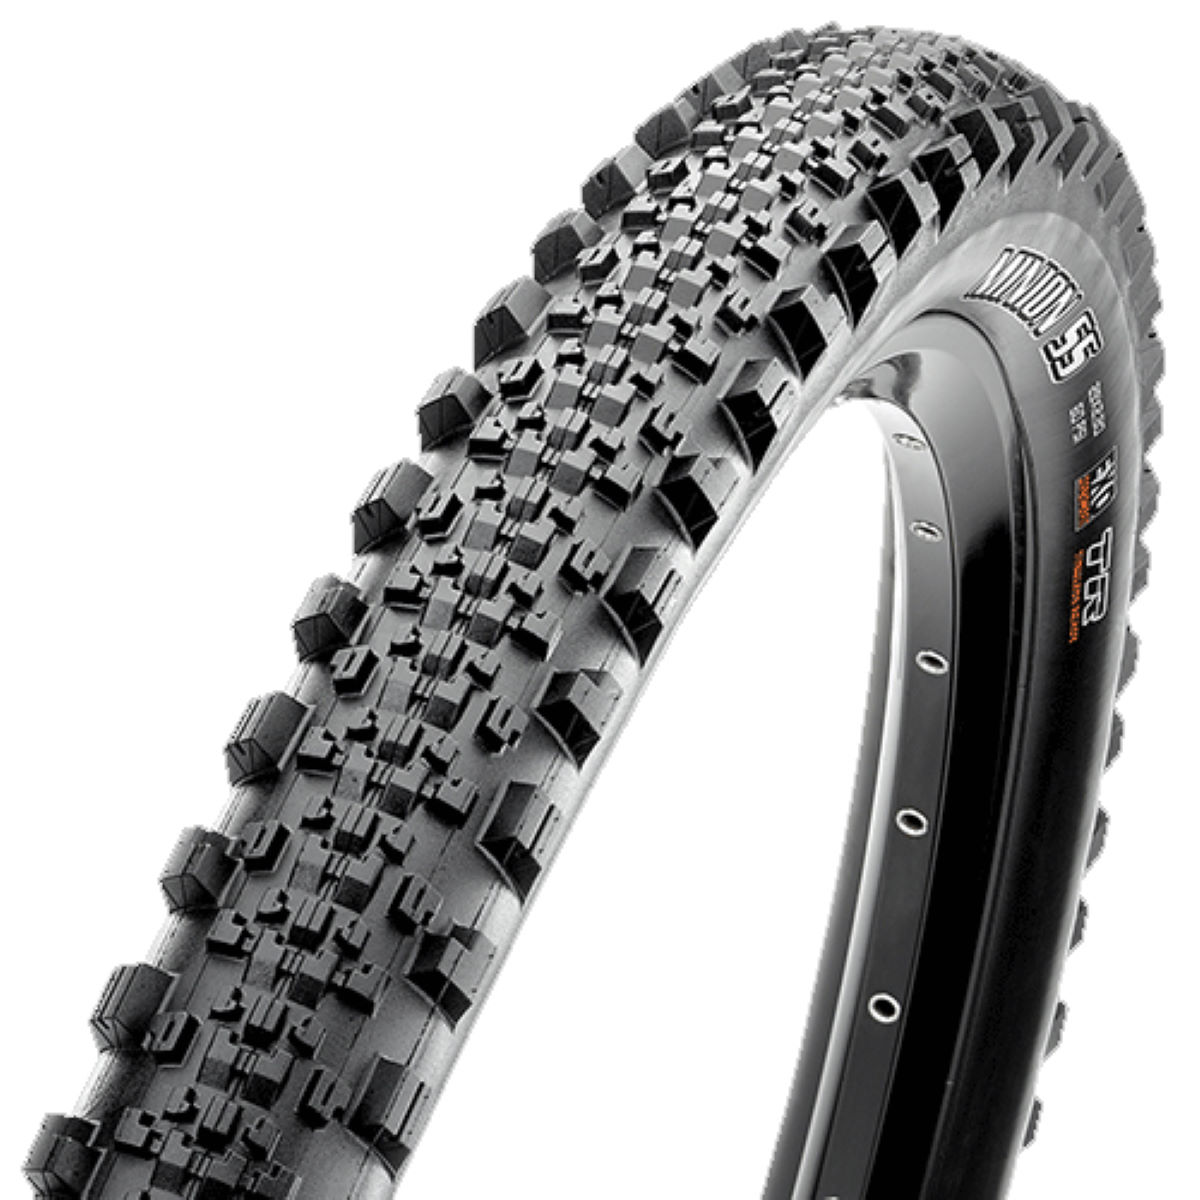 Maxxis Maxxis Minion SS EXO TR Folding Tyre   Tyres